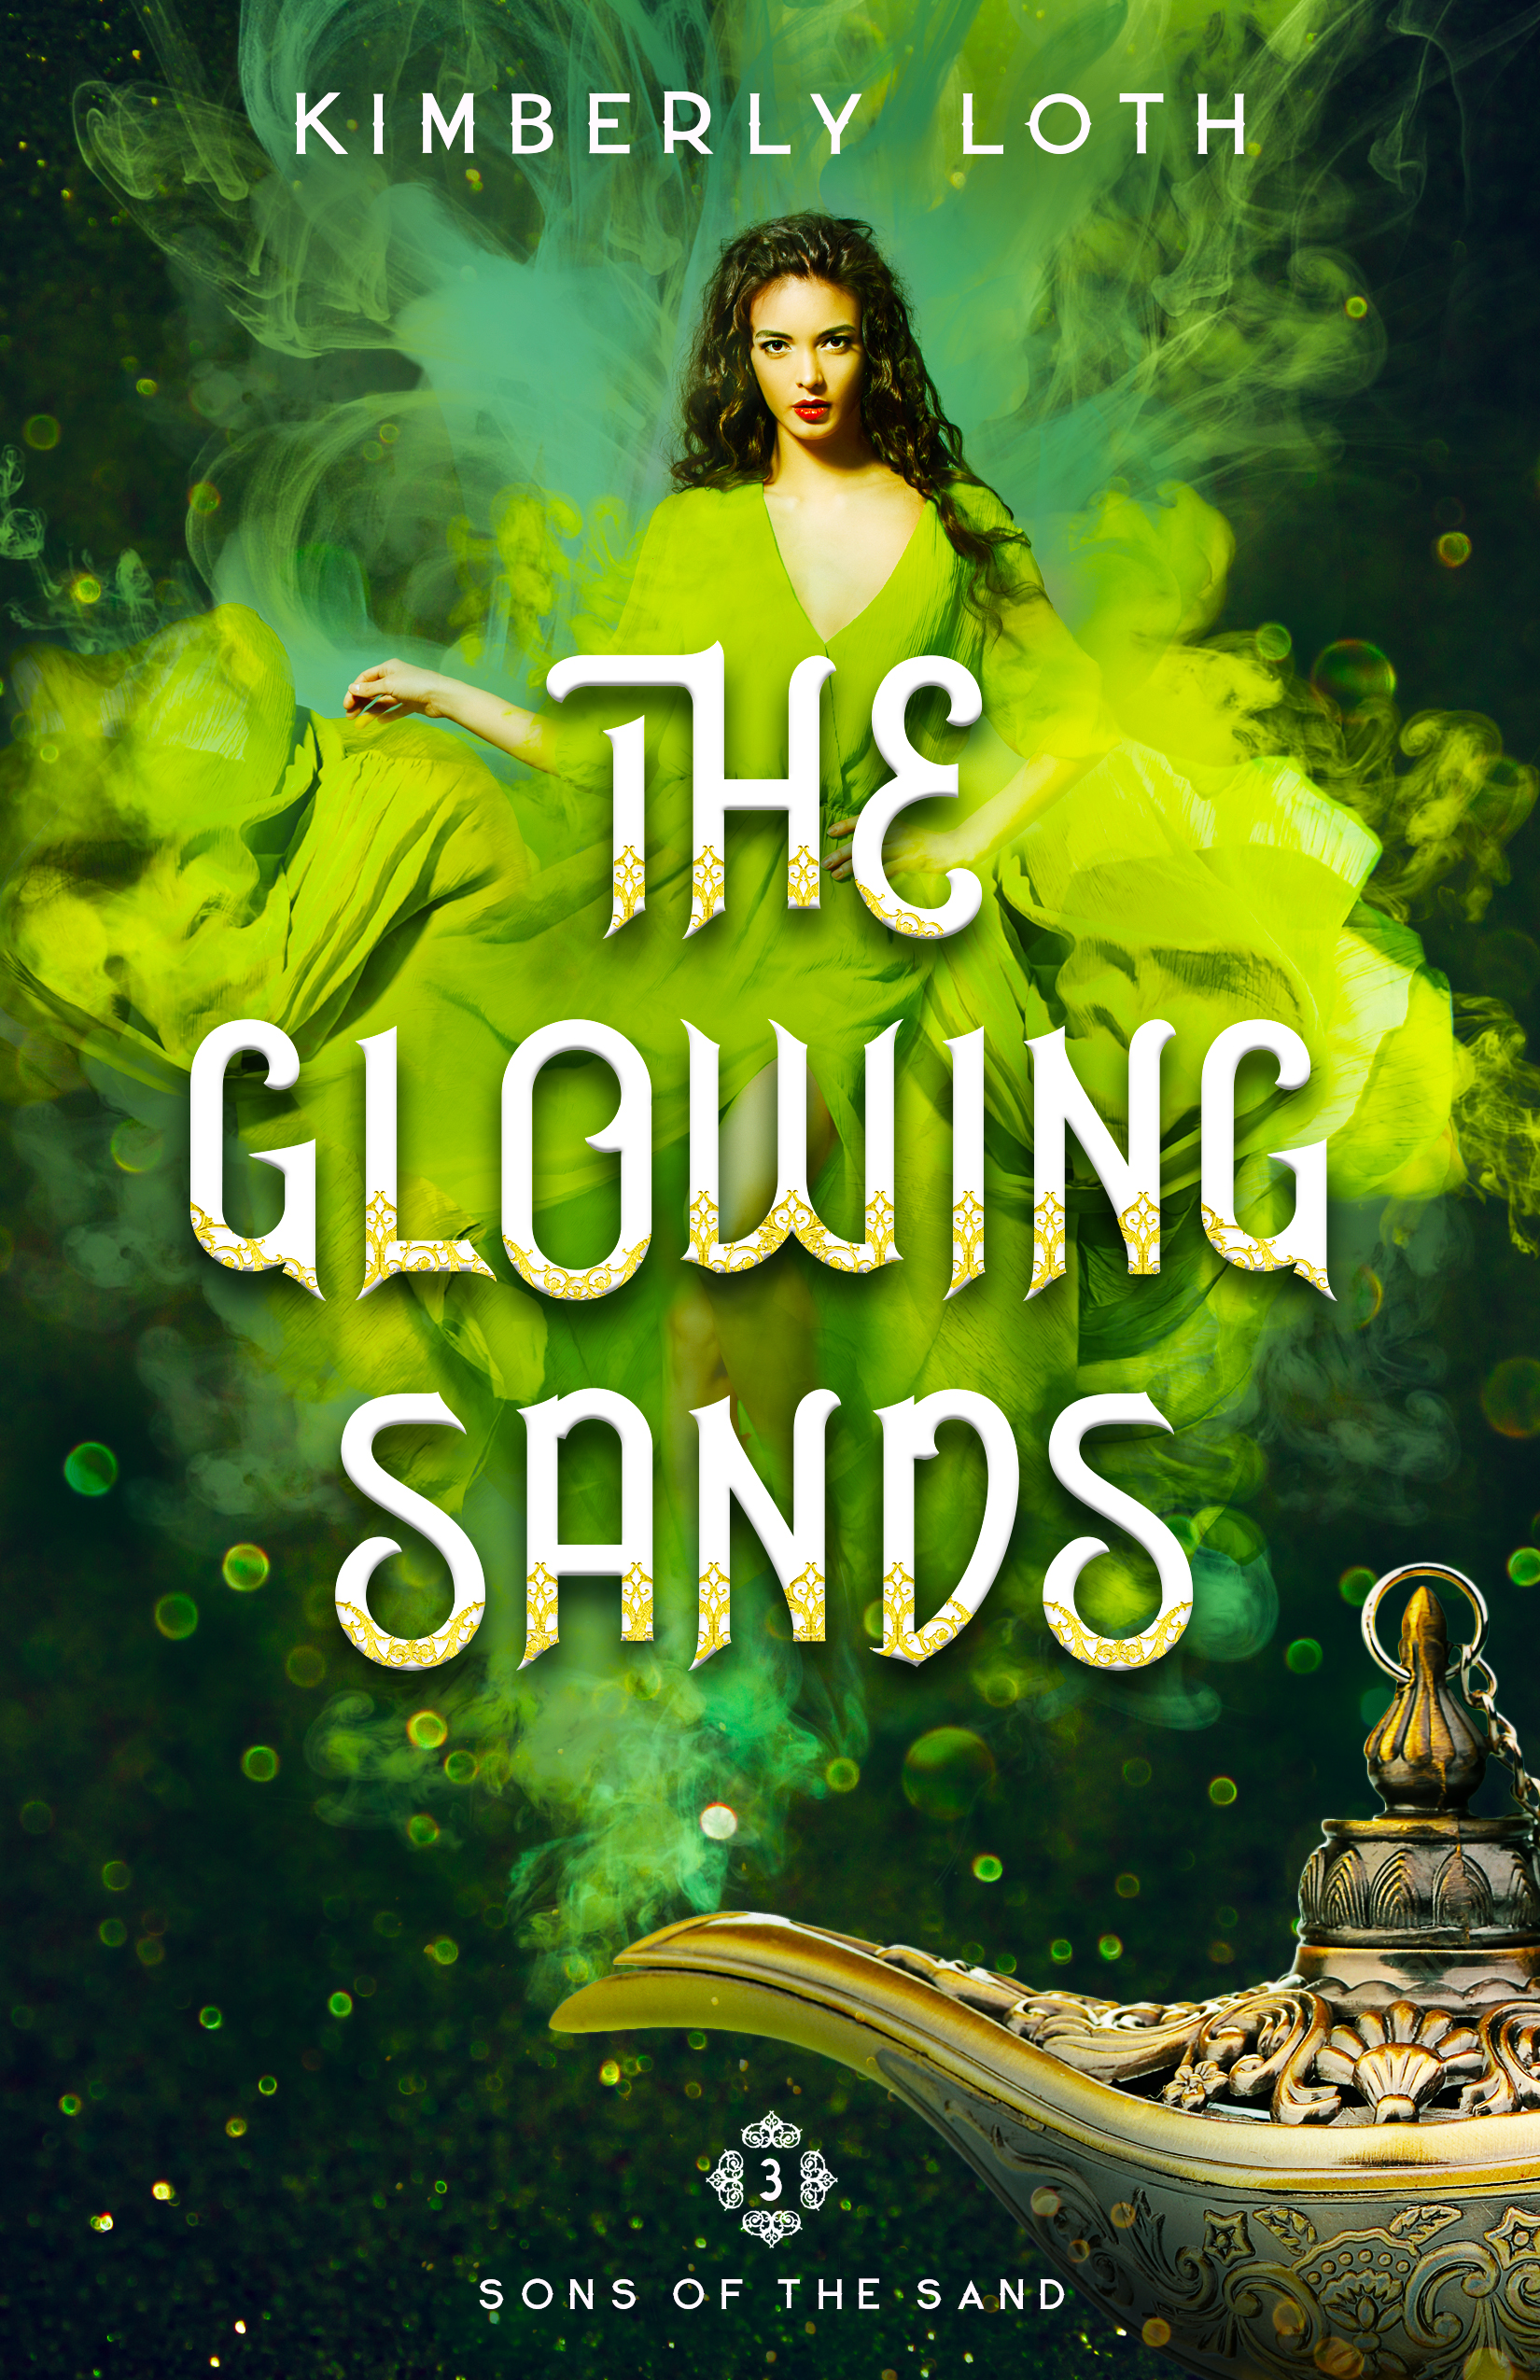 The Glowing Sands By Kimberly Loth | BOOK REVIEW